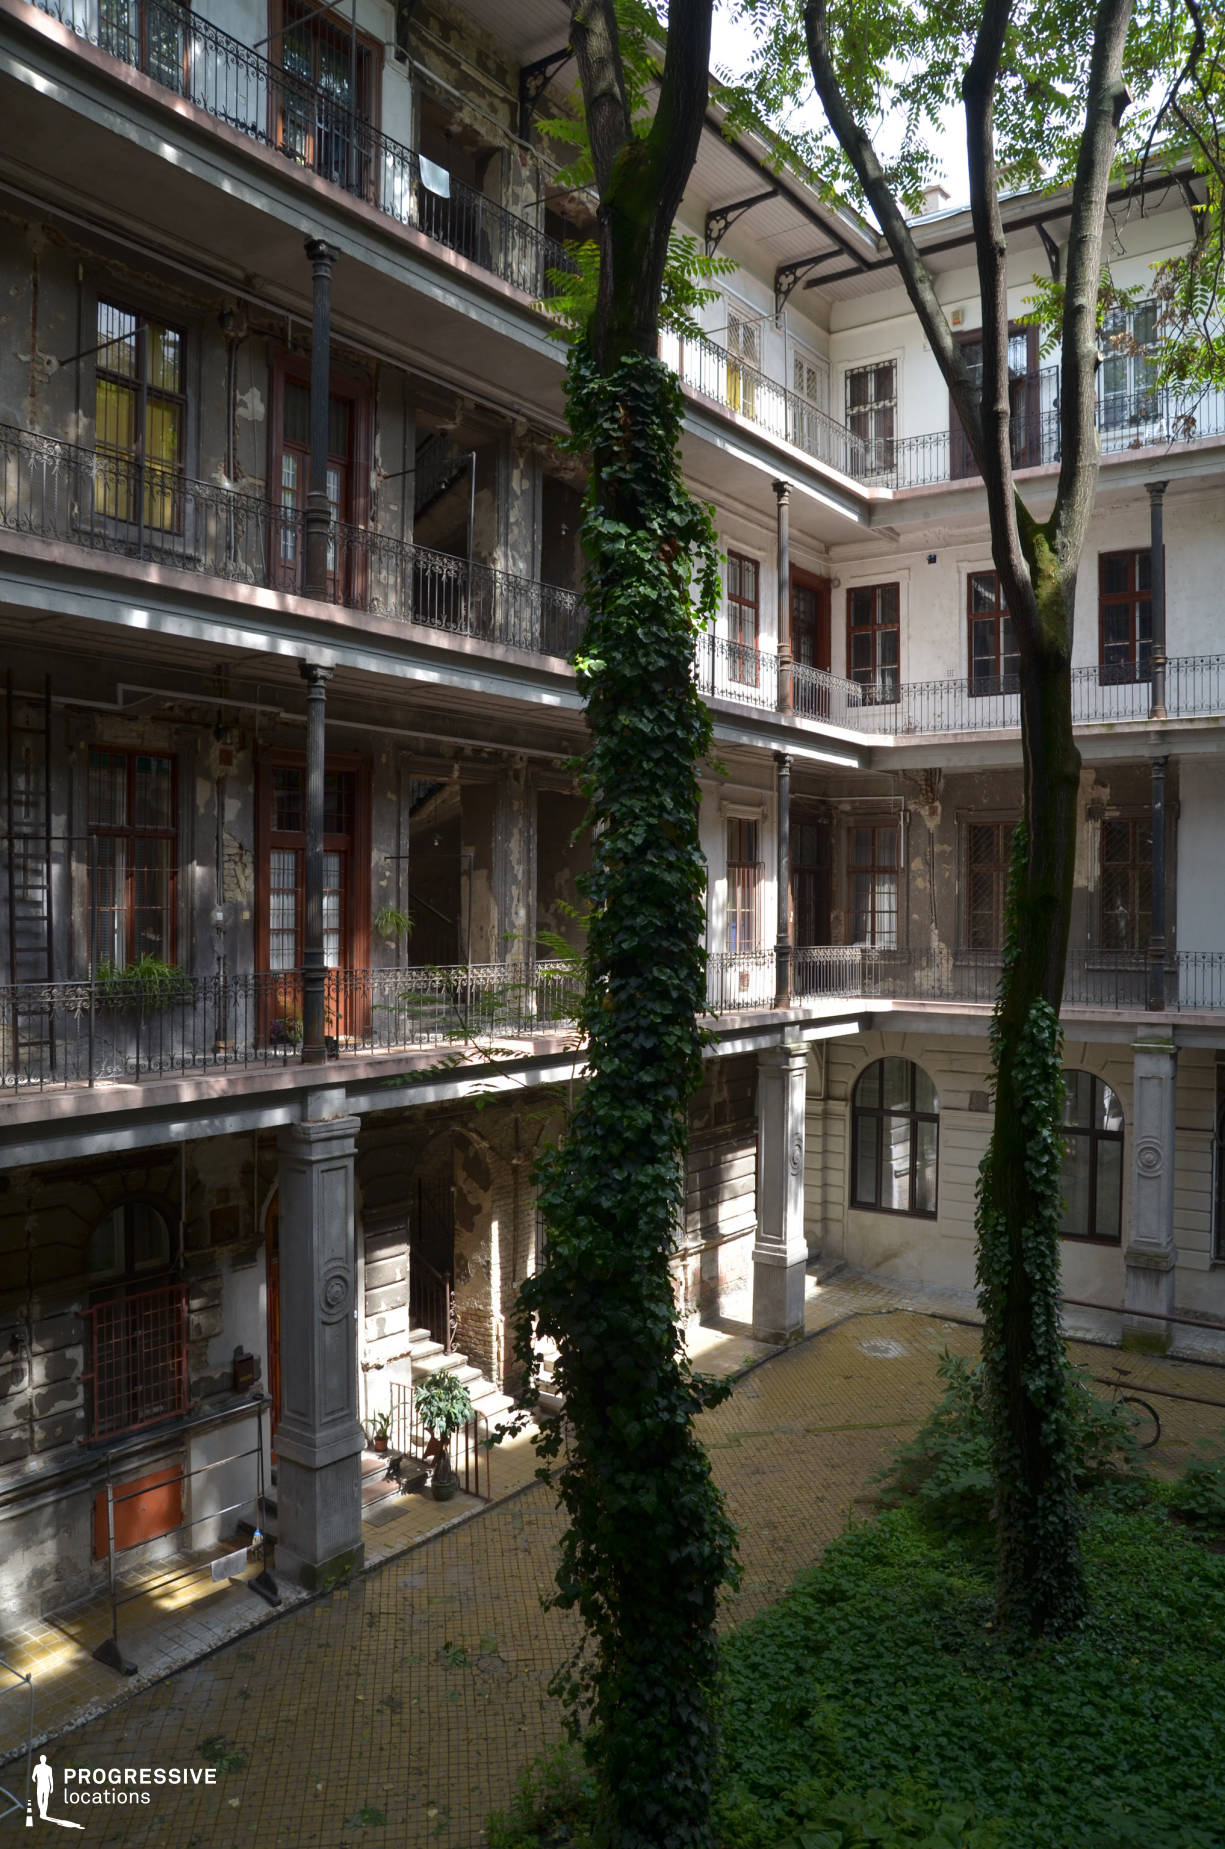 Locations in Budapest: Andrassy Courtyard, Trees